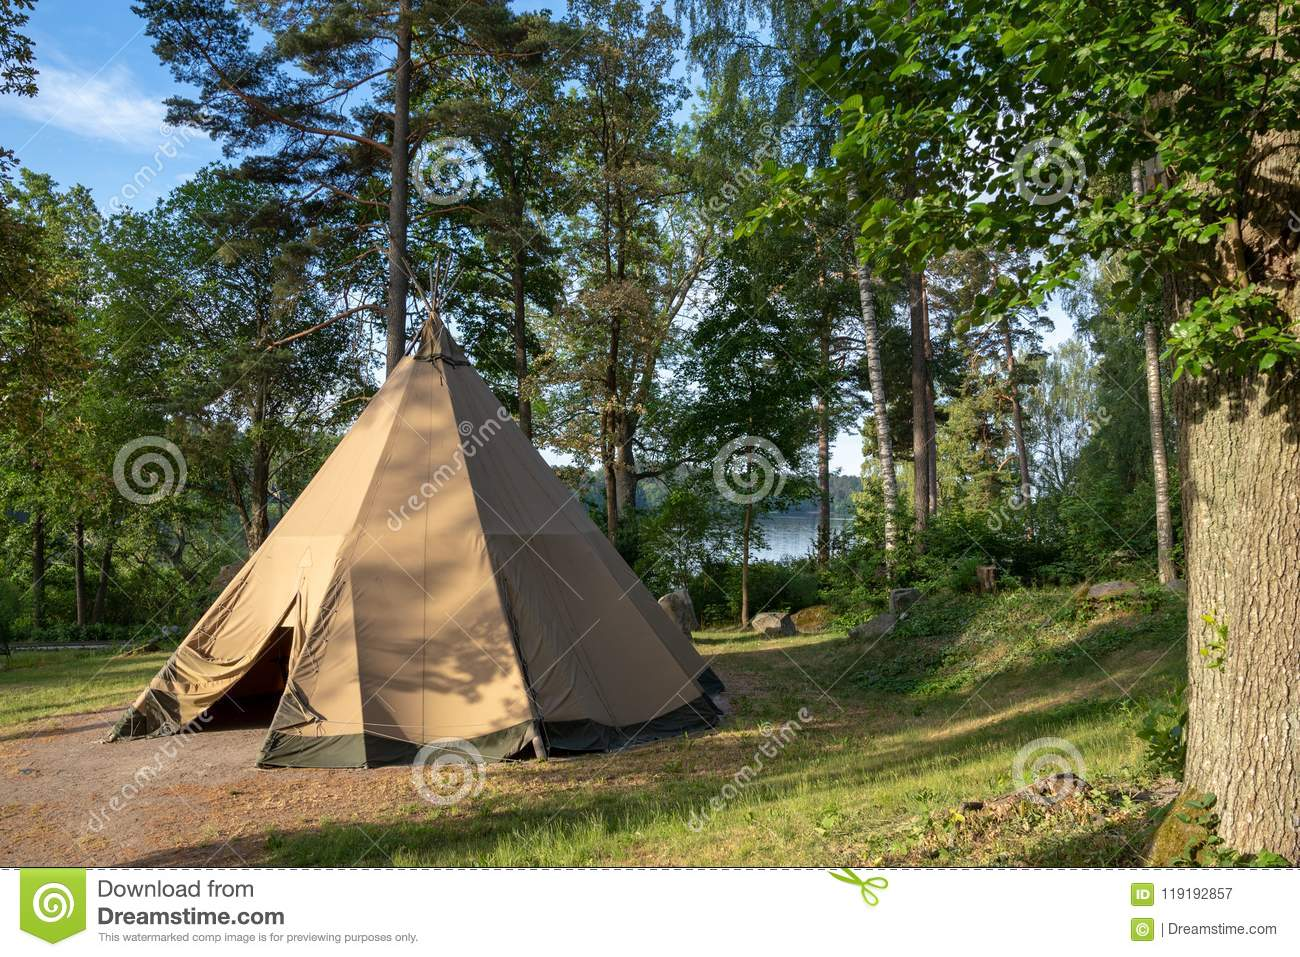 A large traditional teepee tent with luxurious glamping interior provides alternate but comfortable lodging for outdoor adventurer